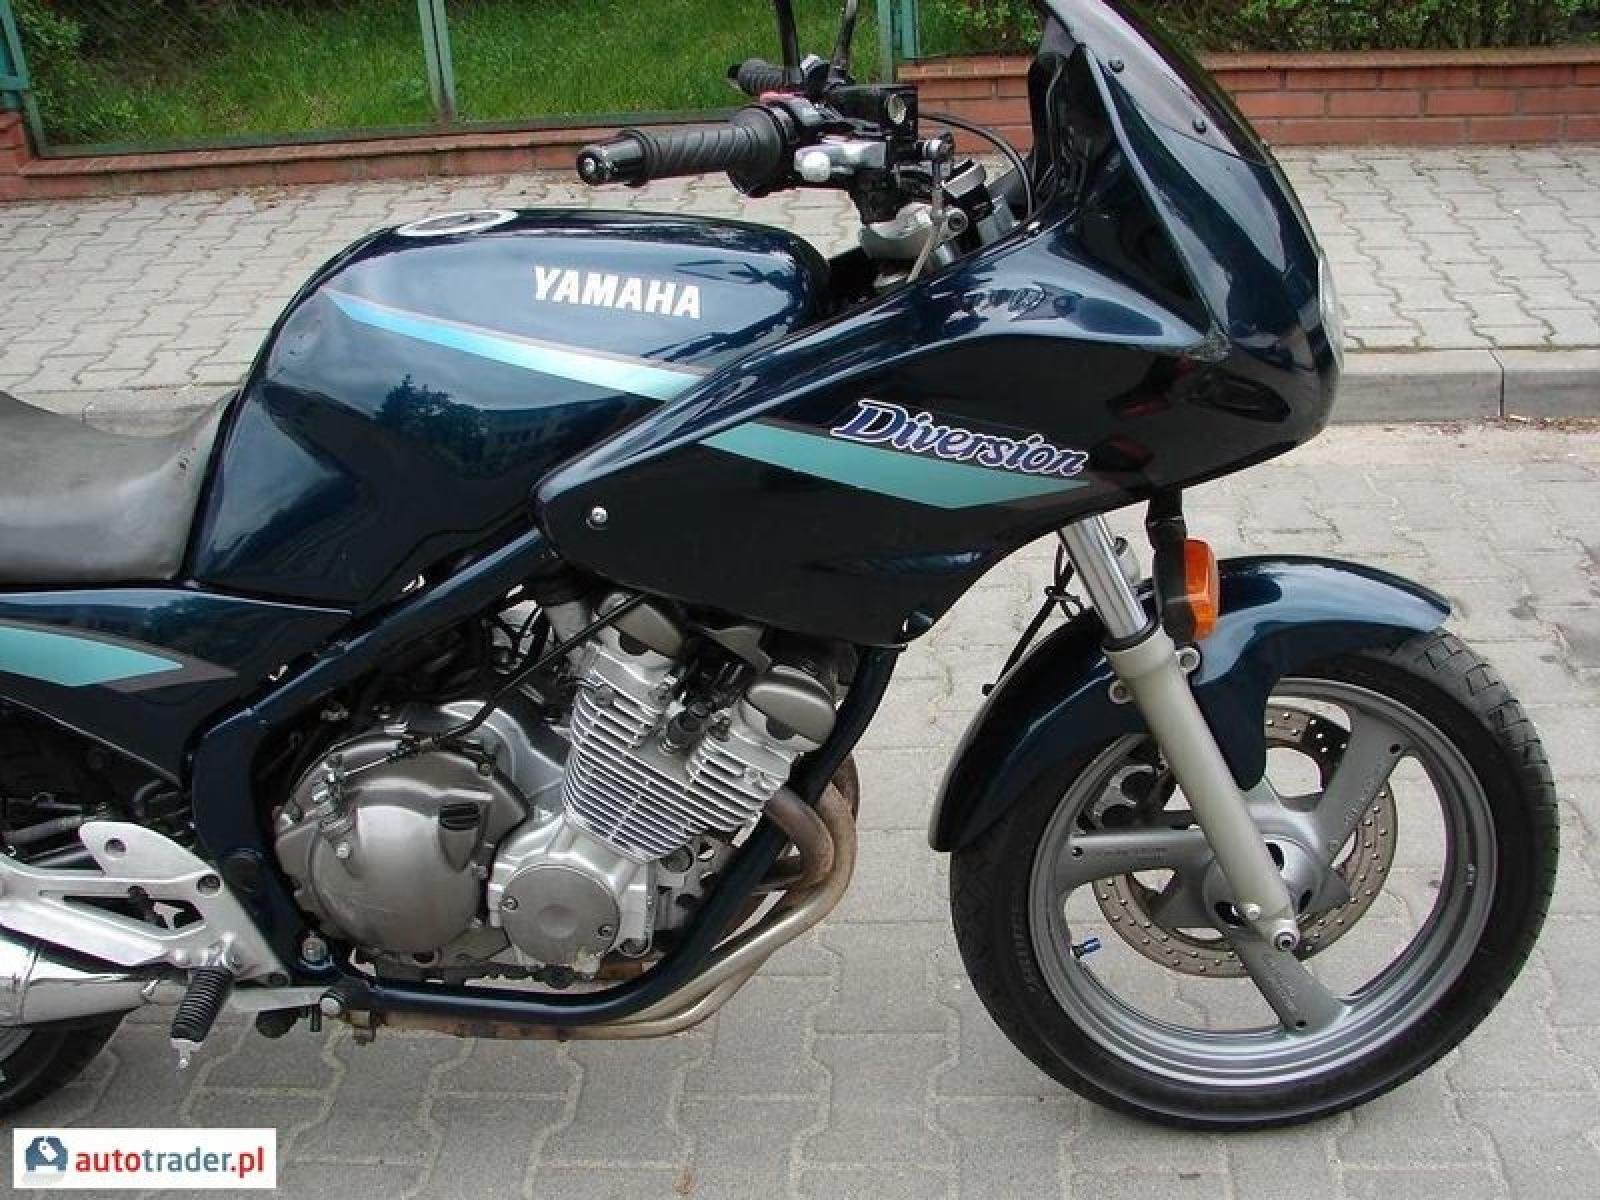 Yamaha XJ 600 S Diversion (reduced effect) #4